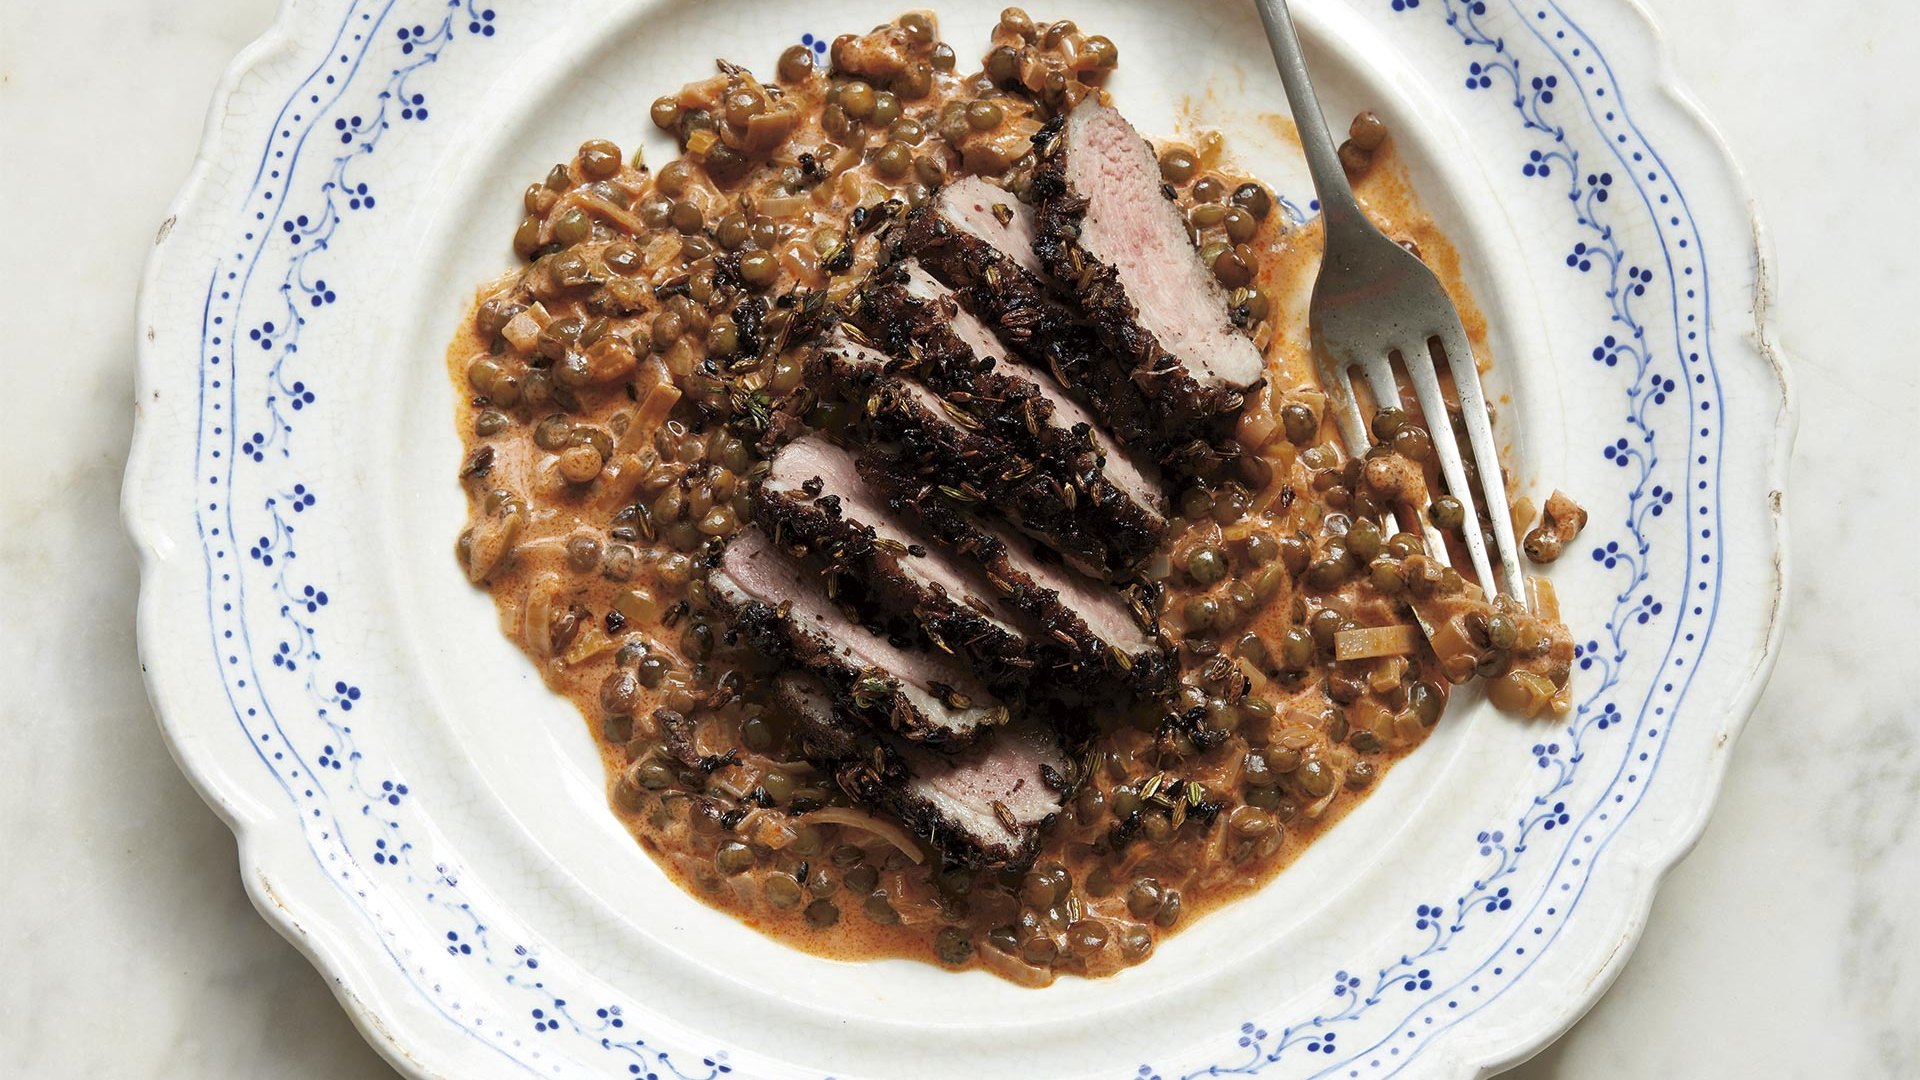 Emma Spitzer's seared duck with spiced lentils. Photography by Claire Winfield